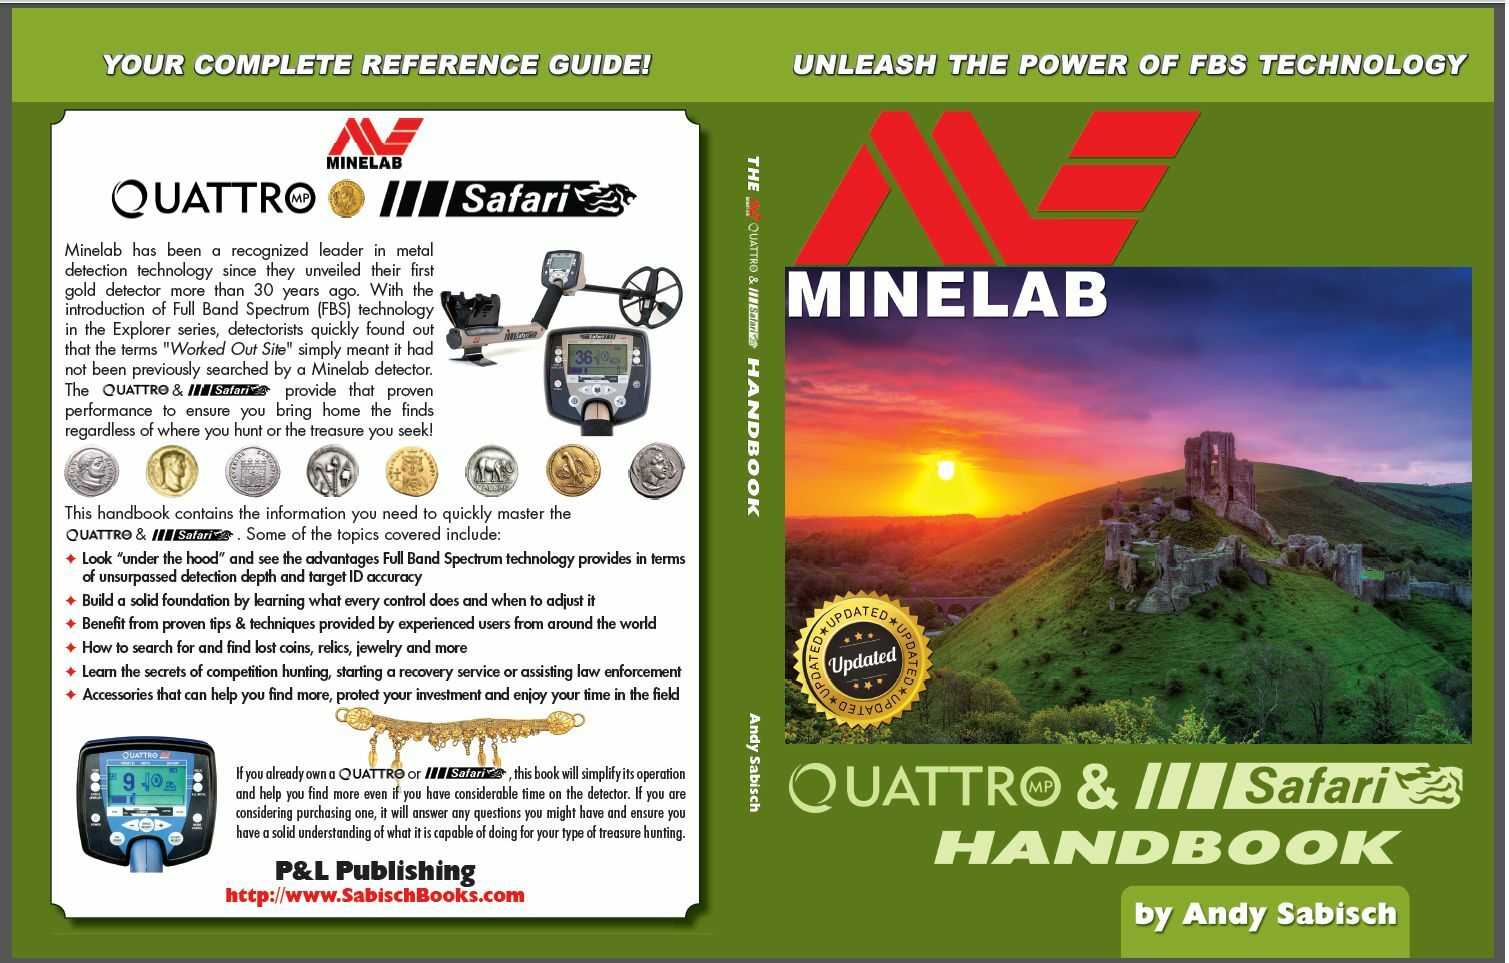 Minelab Safari and Quattro  Handbook...Signed by the Author Andy Sabisch